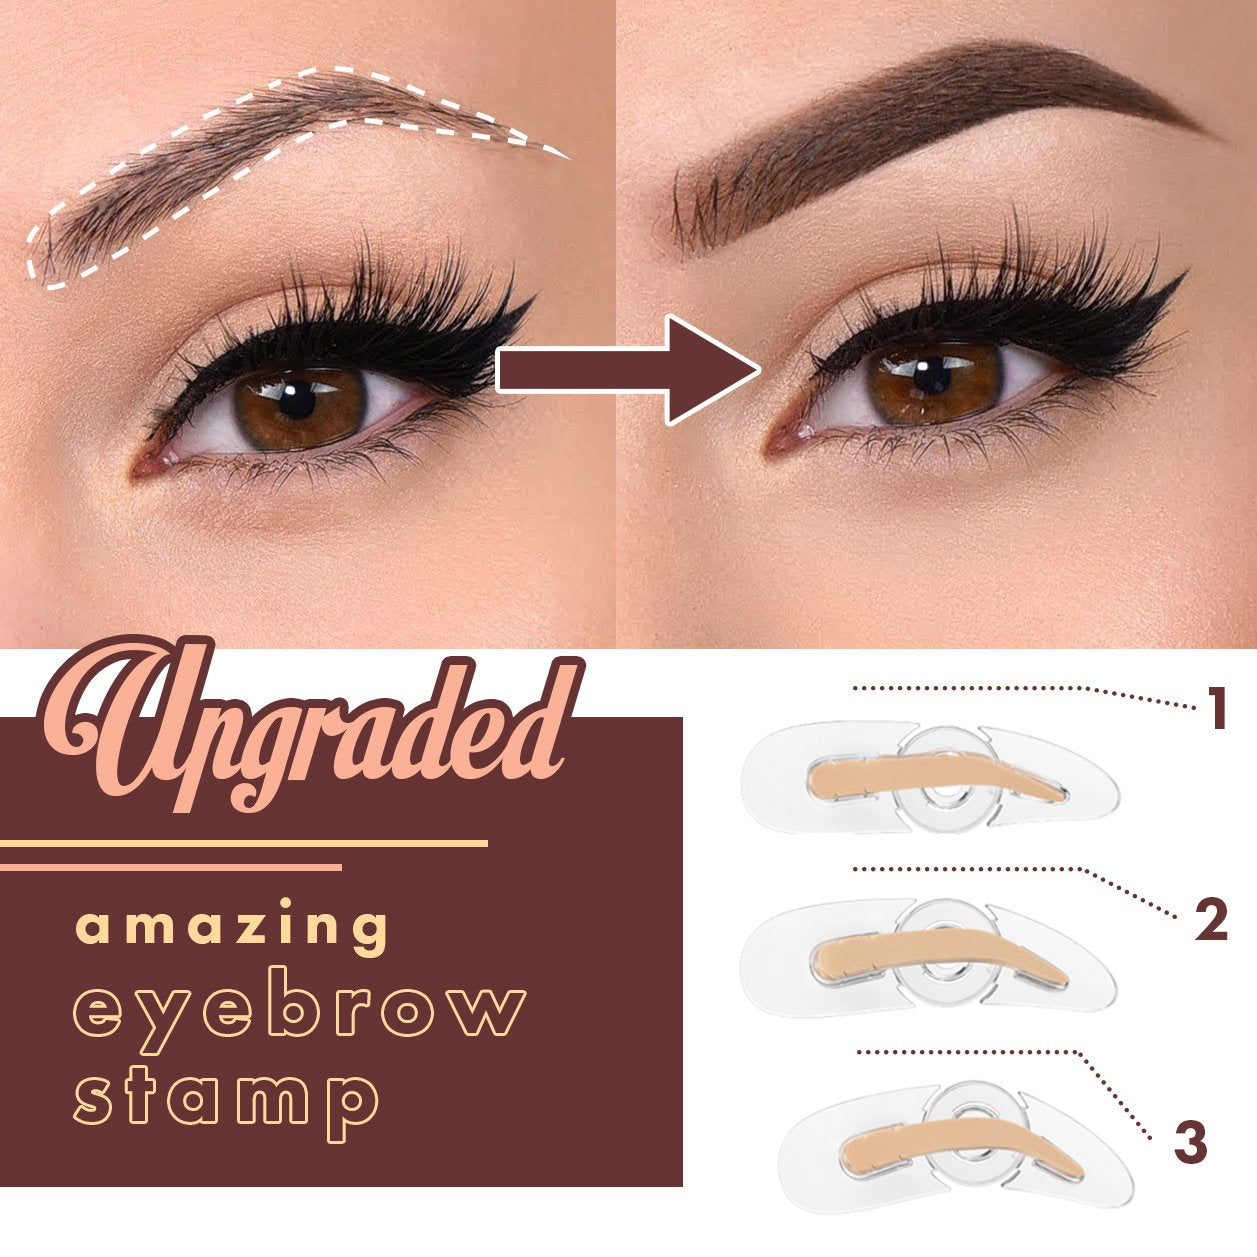 Amazing Eyebrow Stamp (Ver.2)